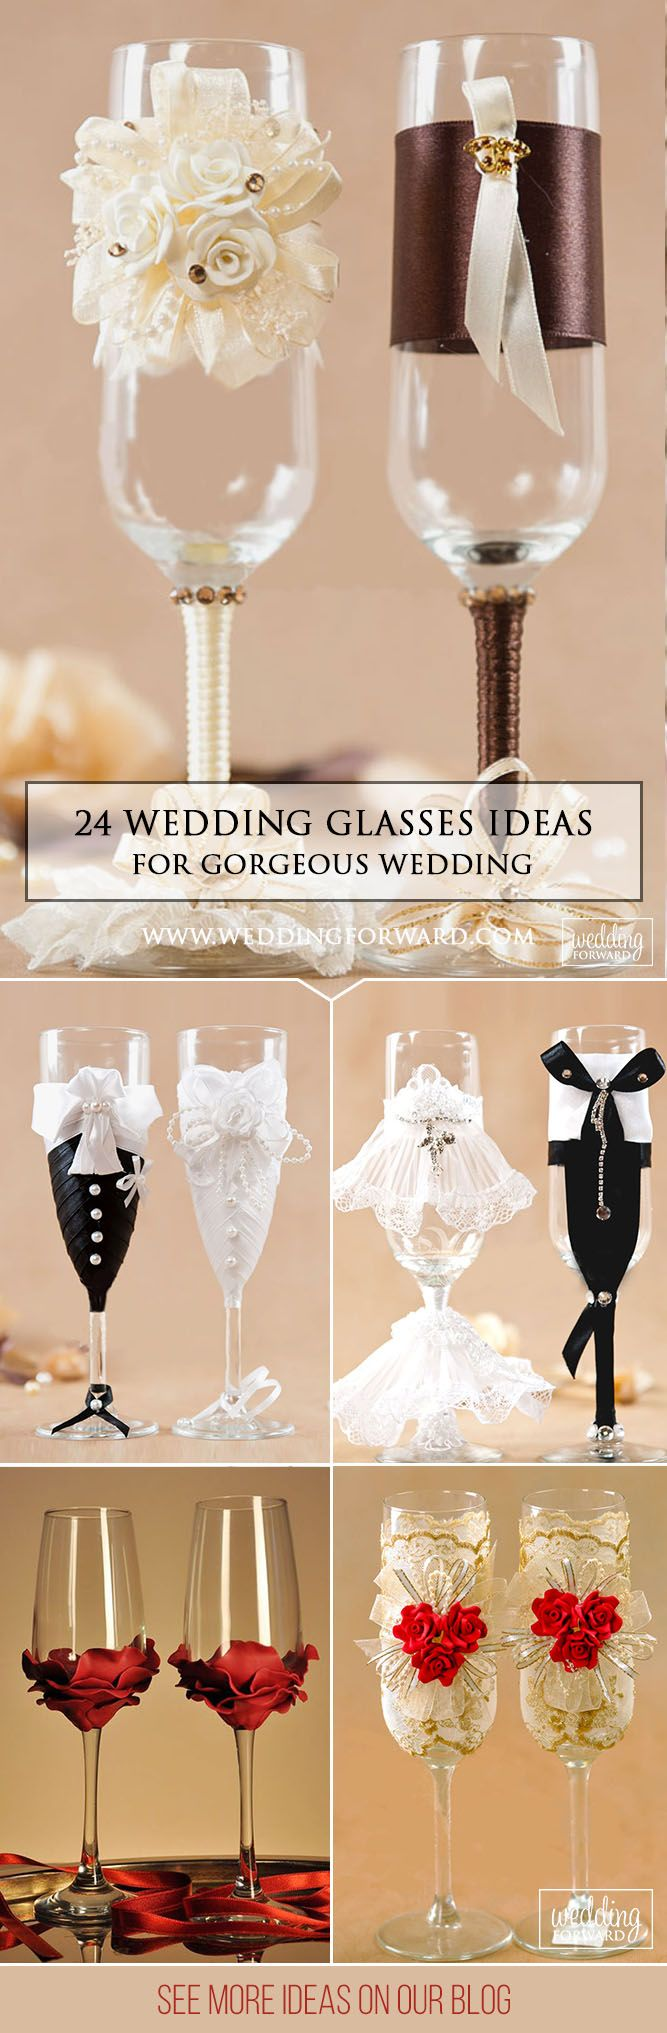 24 Wedding Glasses Décor Ideas To Impress You ❤ The best ideas toasting flutes for bride and groom in a different style which impress you. Look this wedding glasses decor ideas and happy planning! See more http://www.weddingforward.com/wedding-glasses/ # wedding #decorations